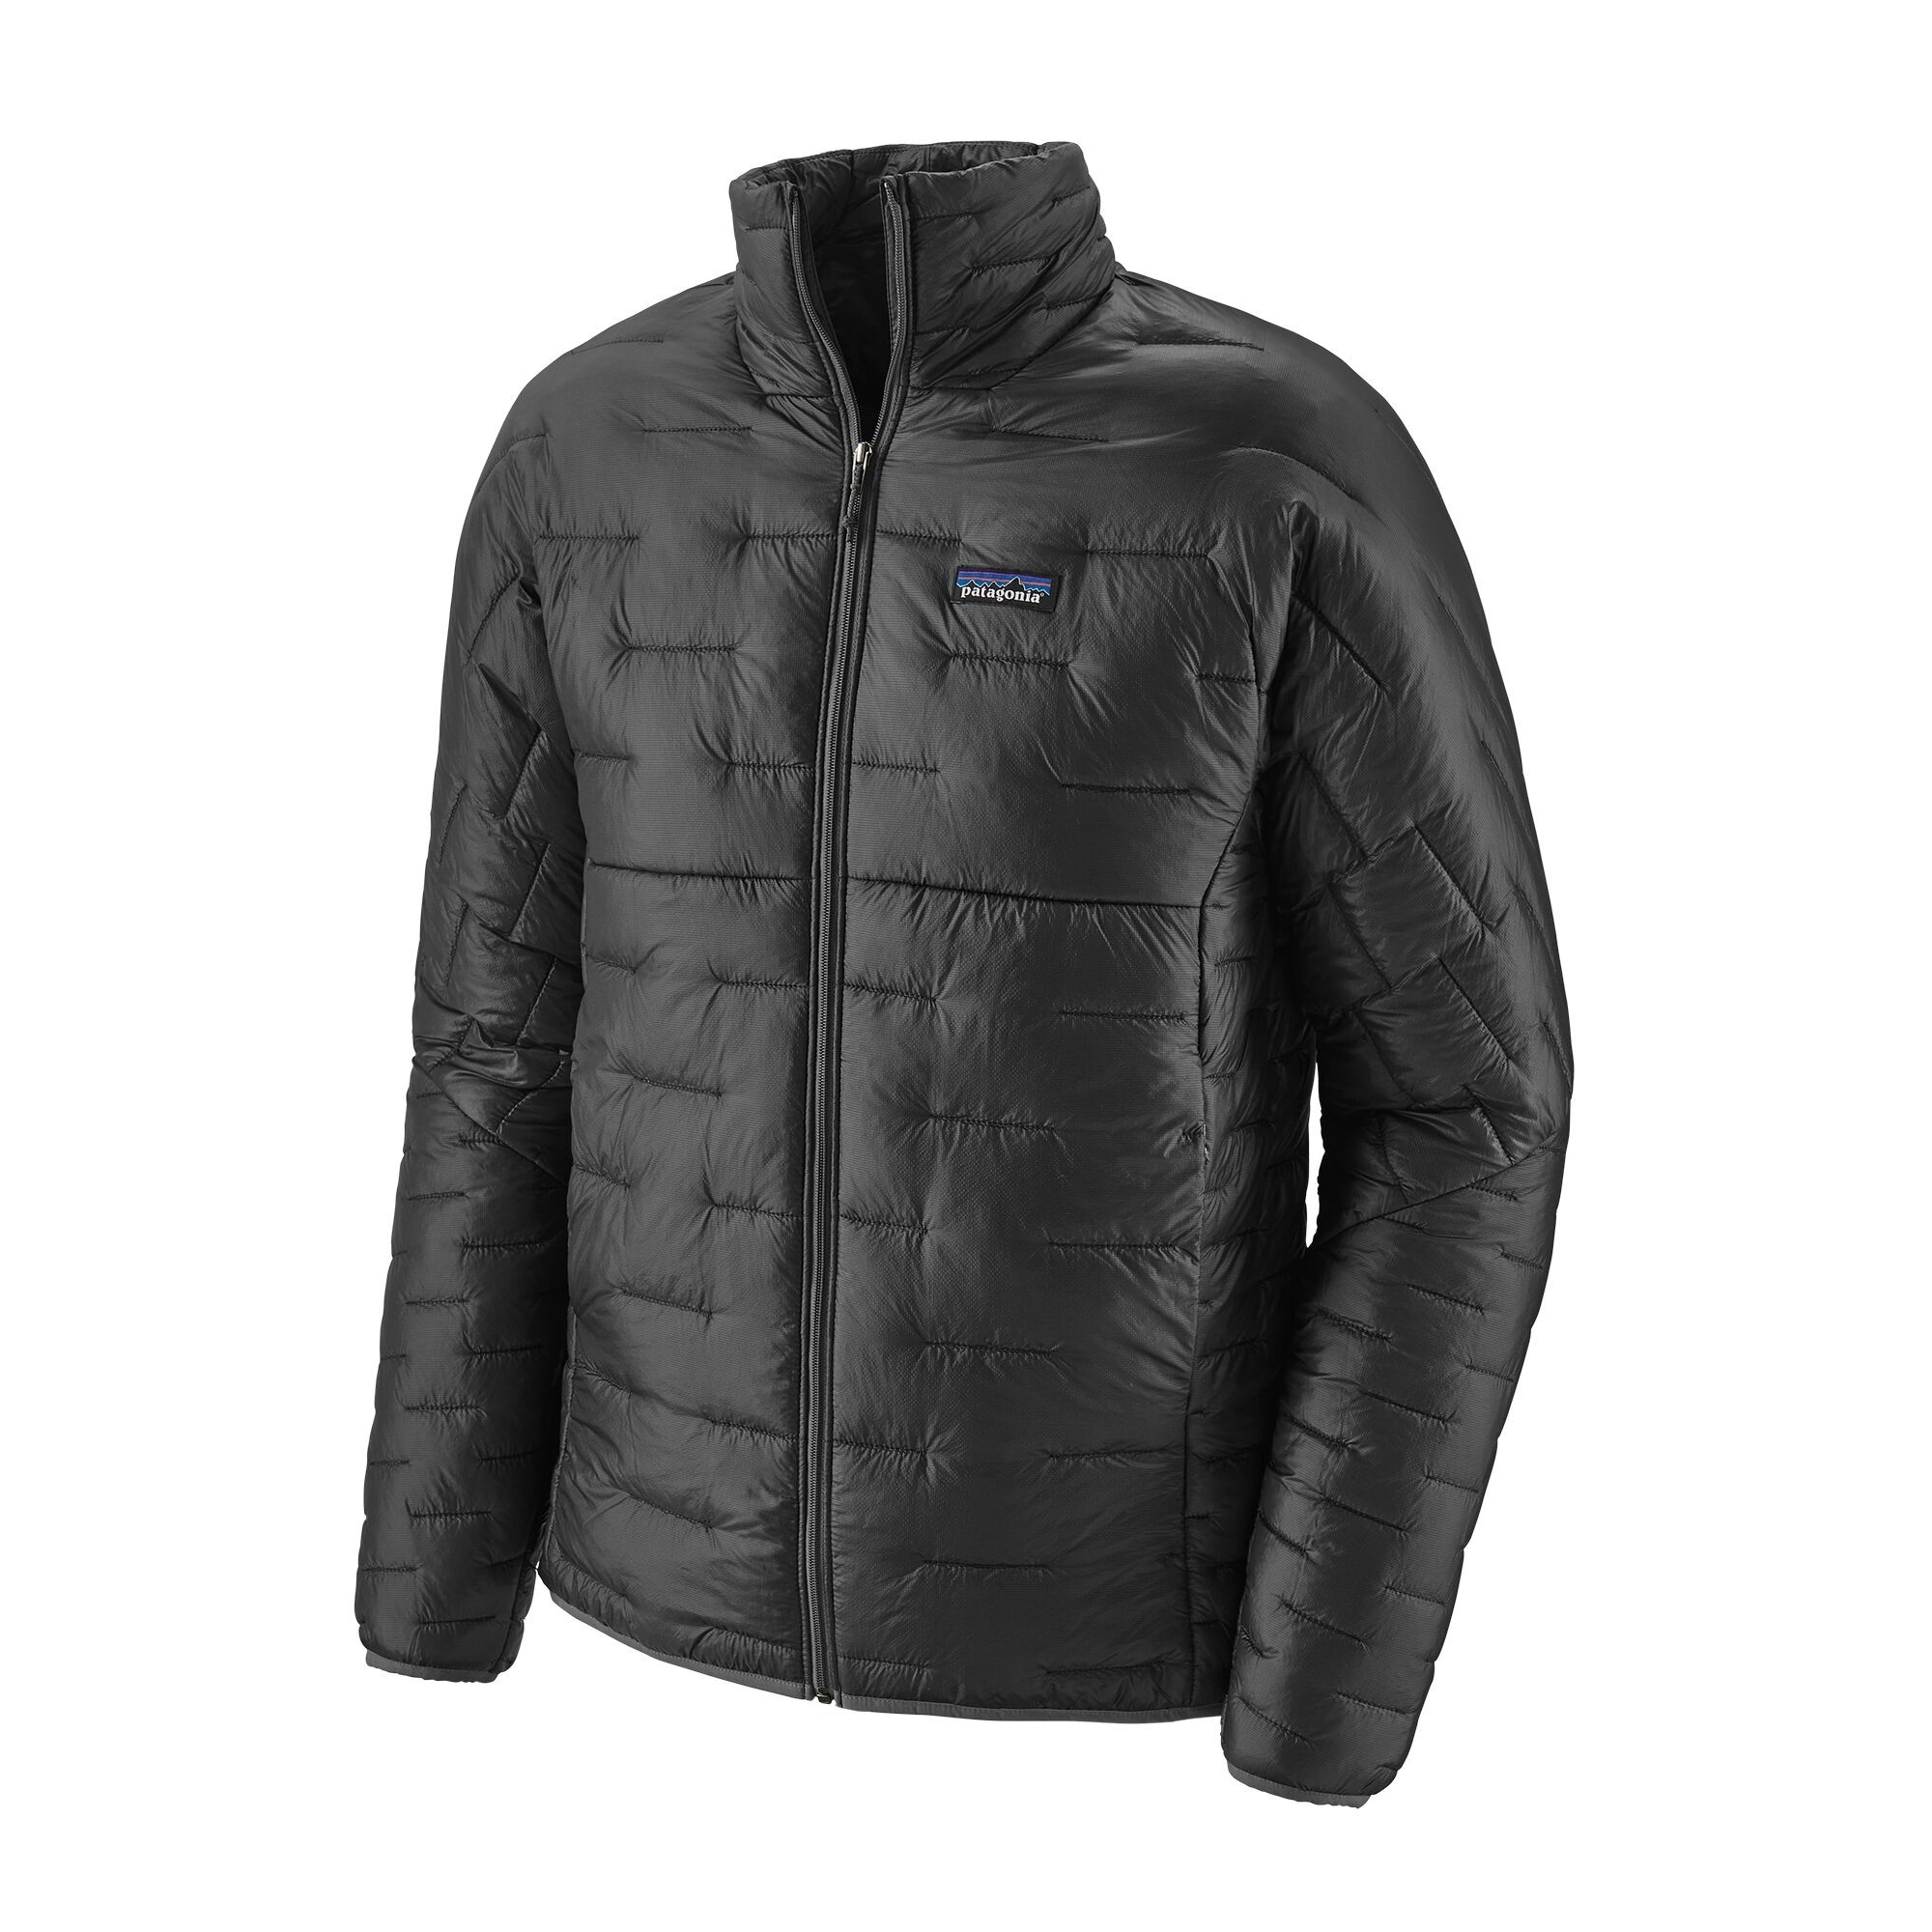 Patagonia Men's Micro Puff Jacket : Forge Grey